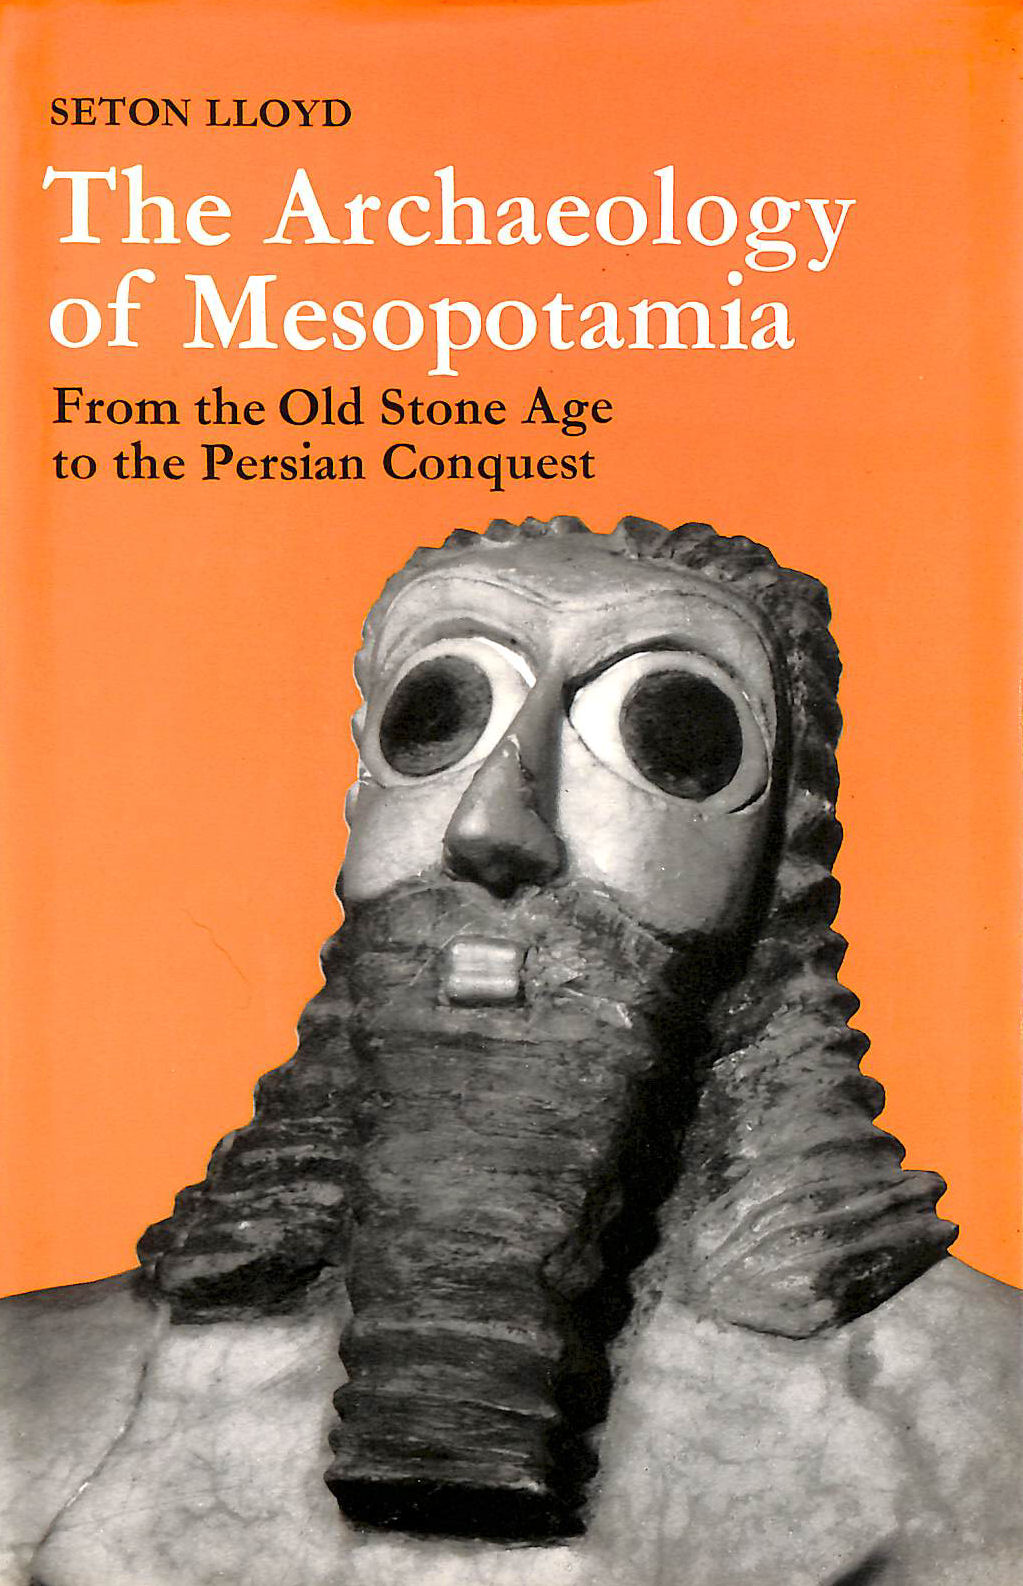 Image for Archaeology of Mesopotamia: From the Old Stone Age to the Persian Conquest (The world of archaeology)